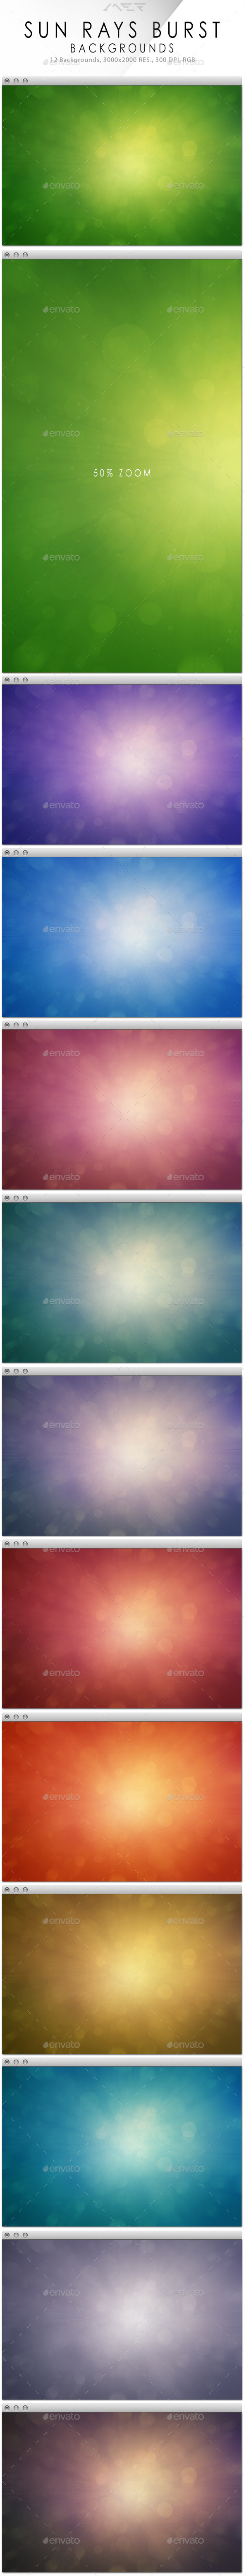 GraphicRiver Sun Rays Burst Backgrounds 10200781